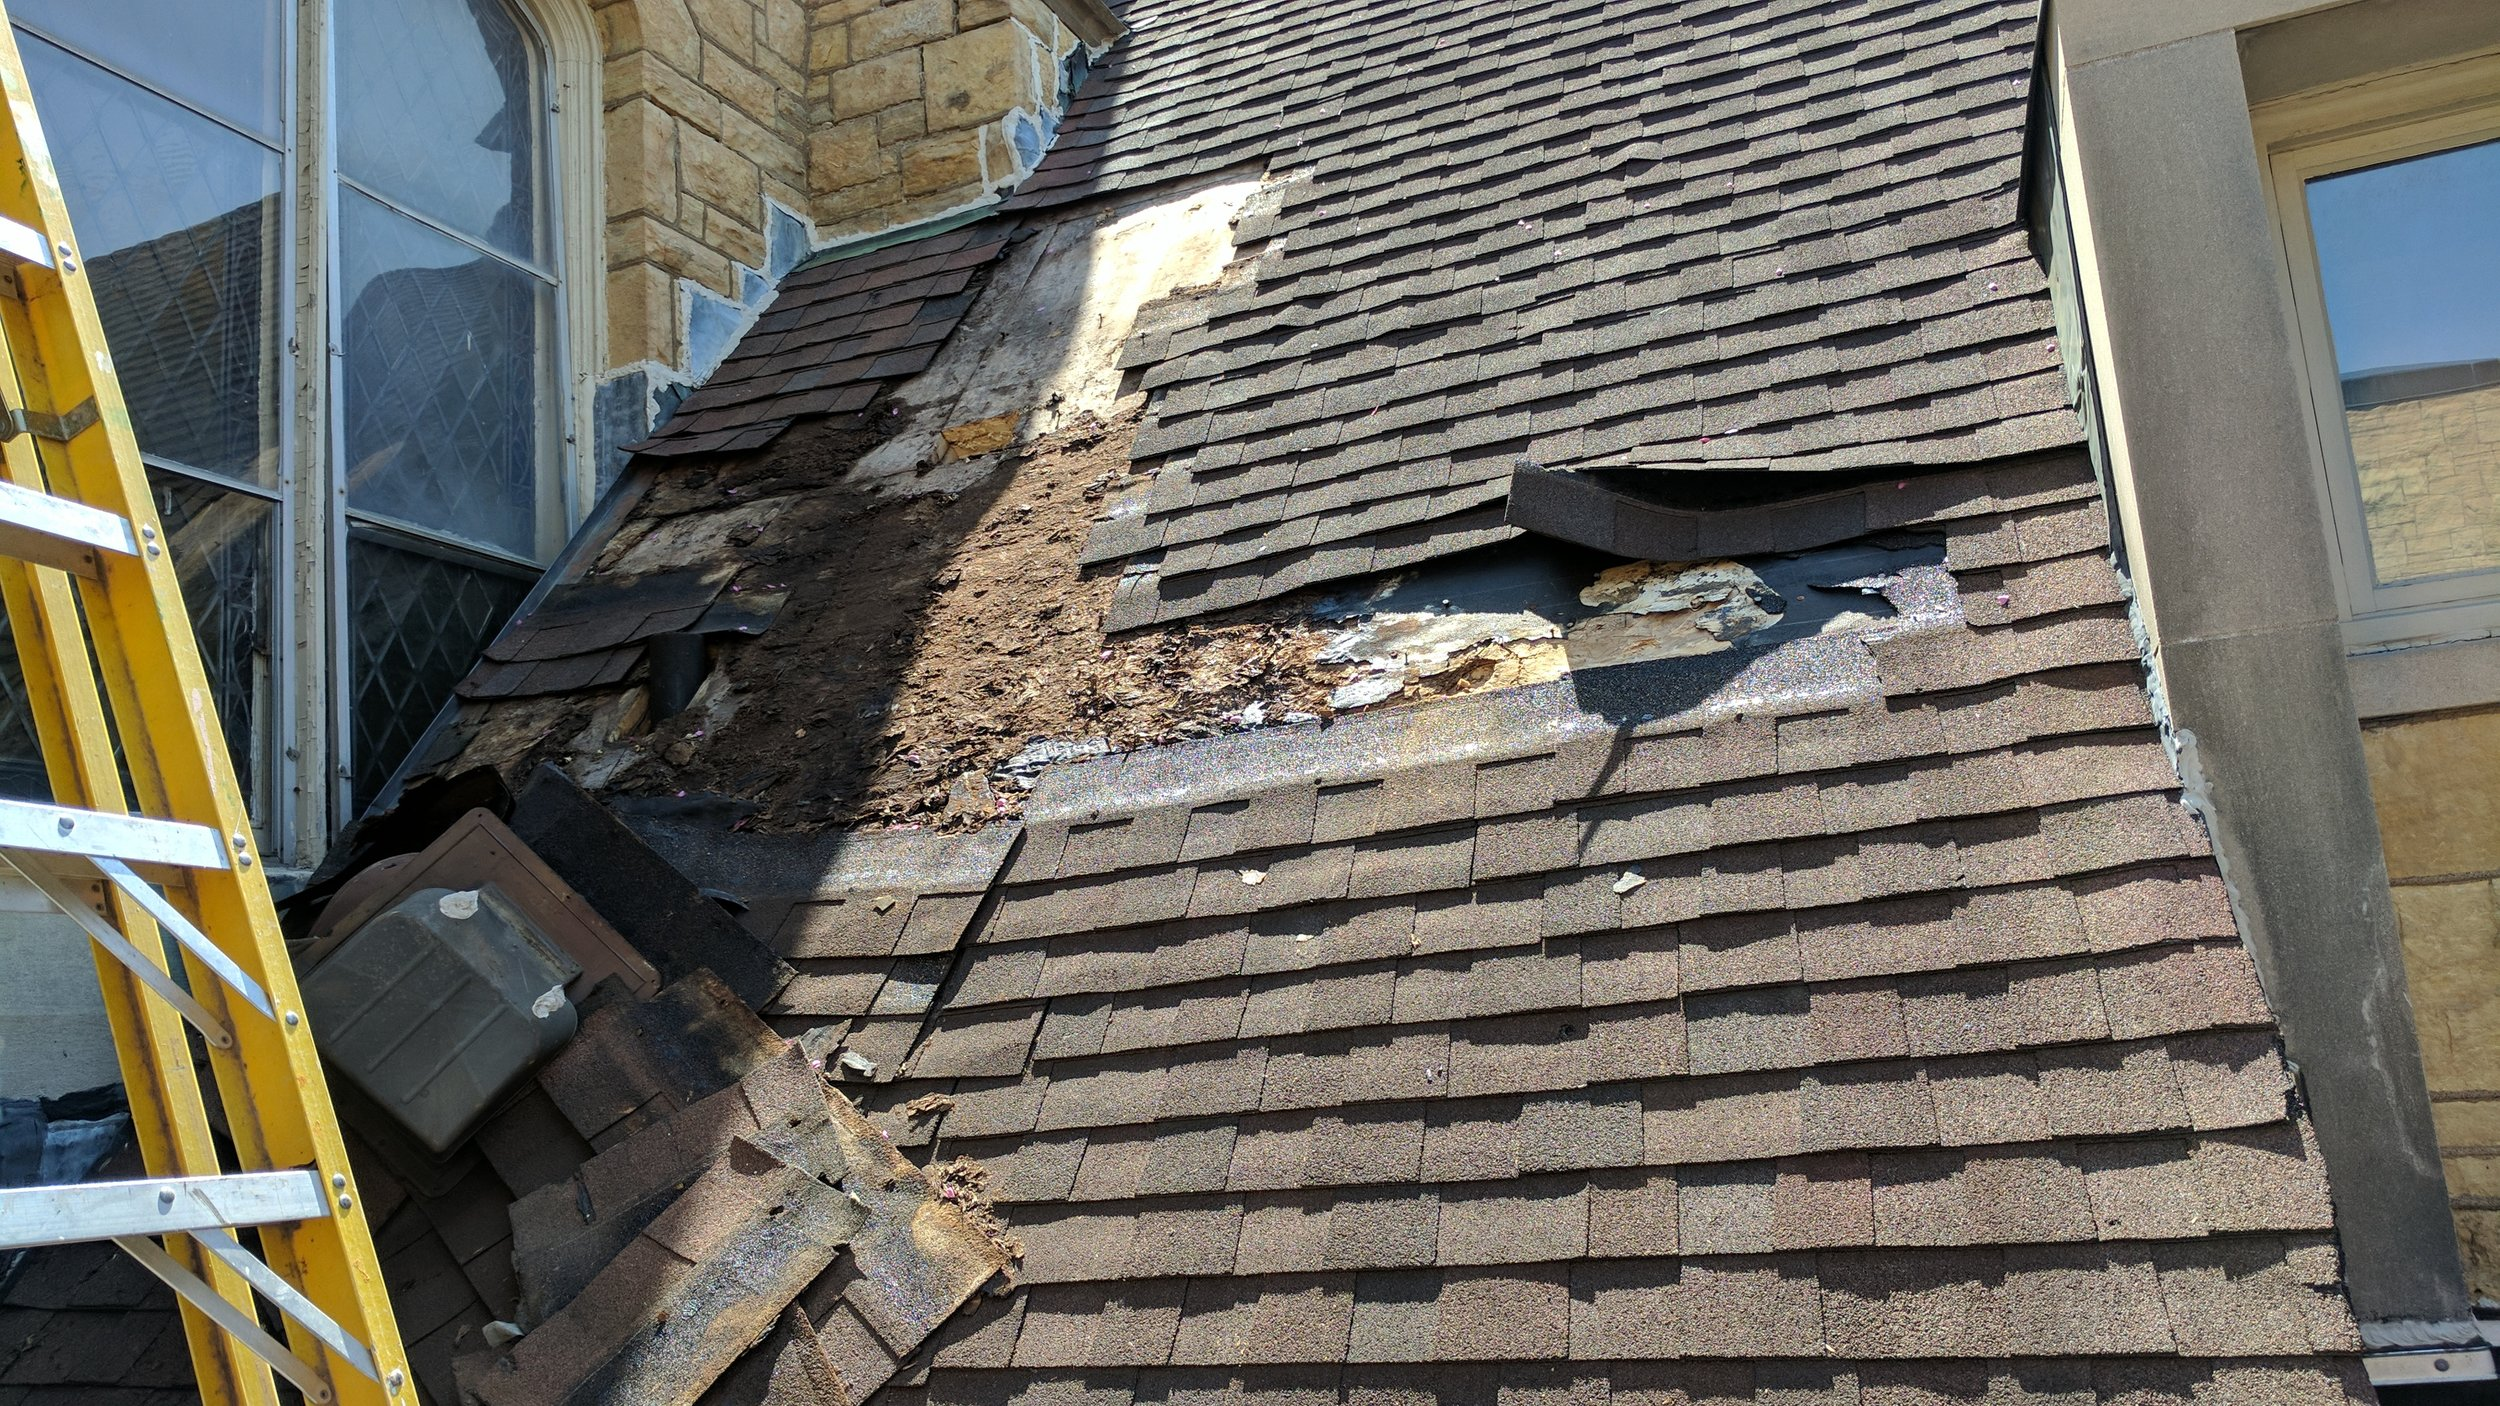 Restoring a section of the roof with water damage.